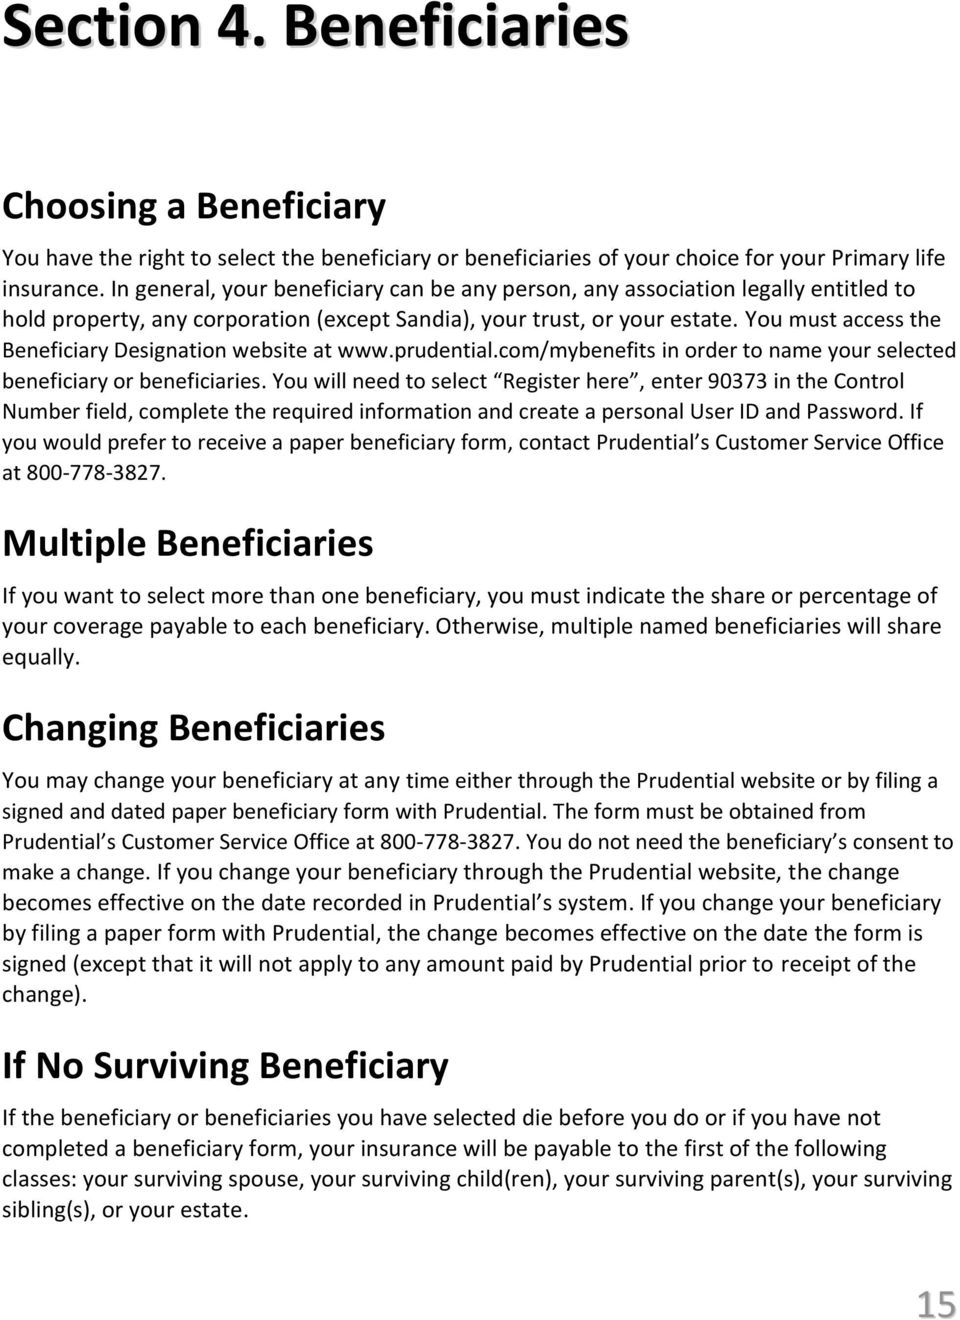 You must access the Beneficiary Designation website at www.prudential.com/mybenefits in order to name your selected beneficiary or beneficiaries.